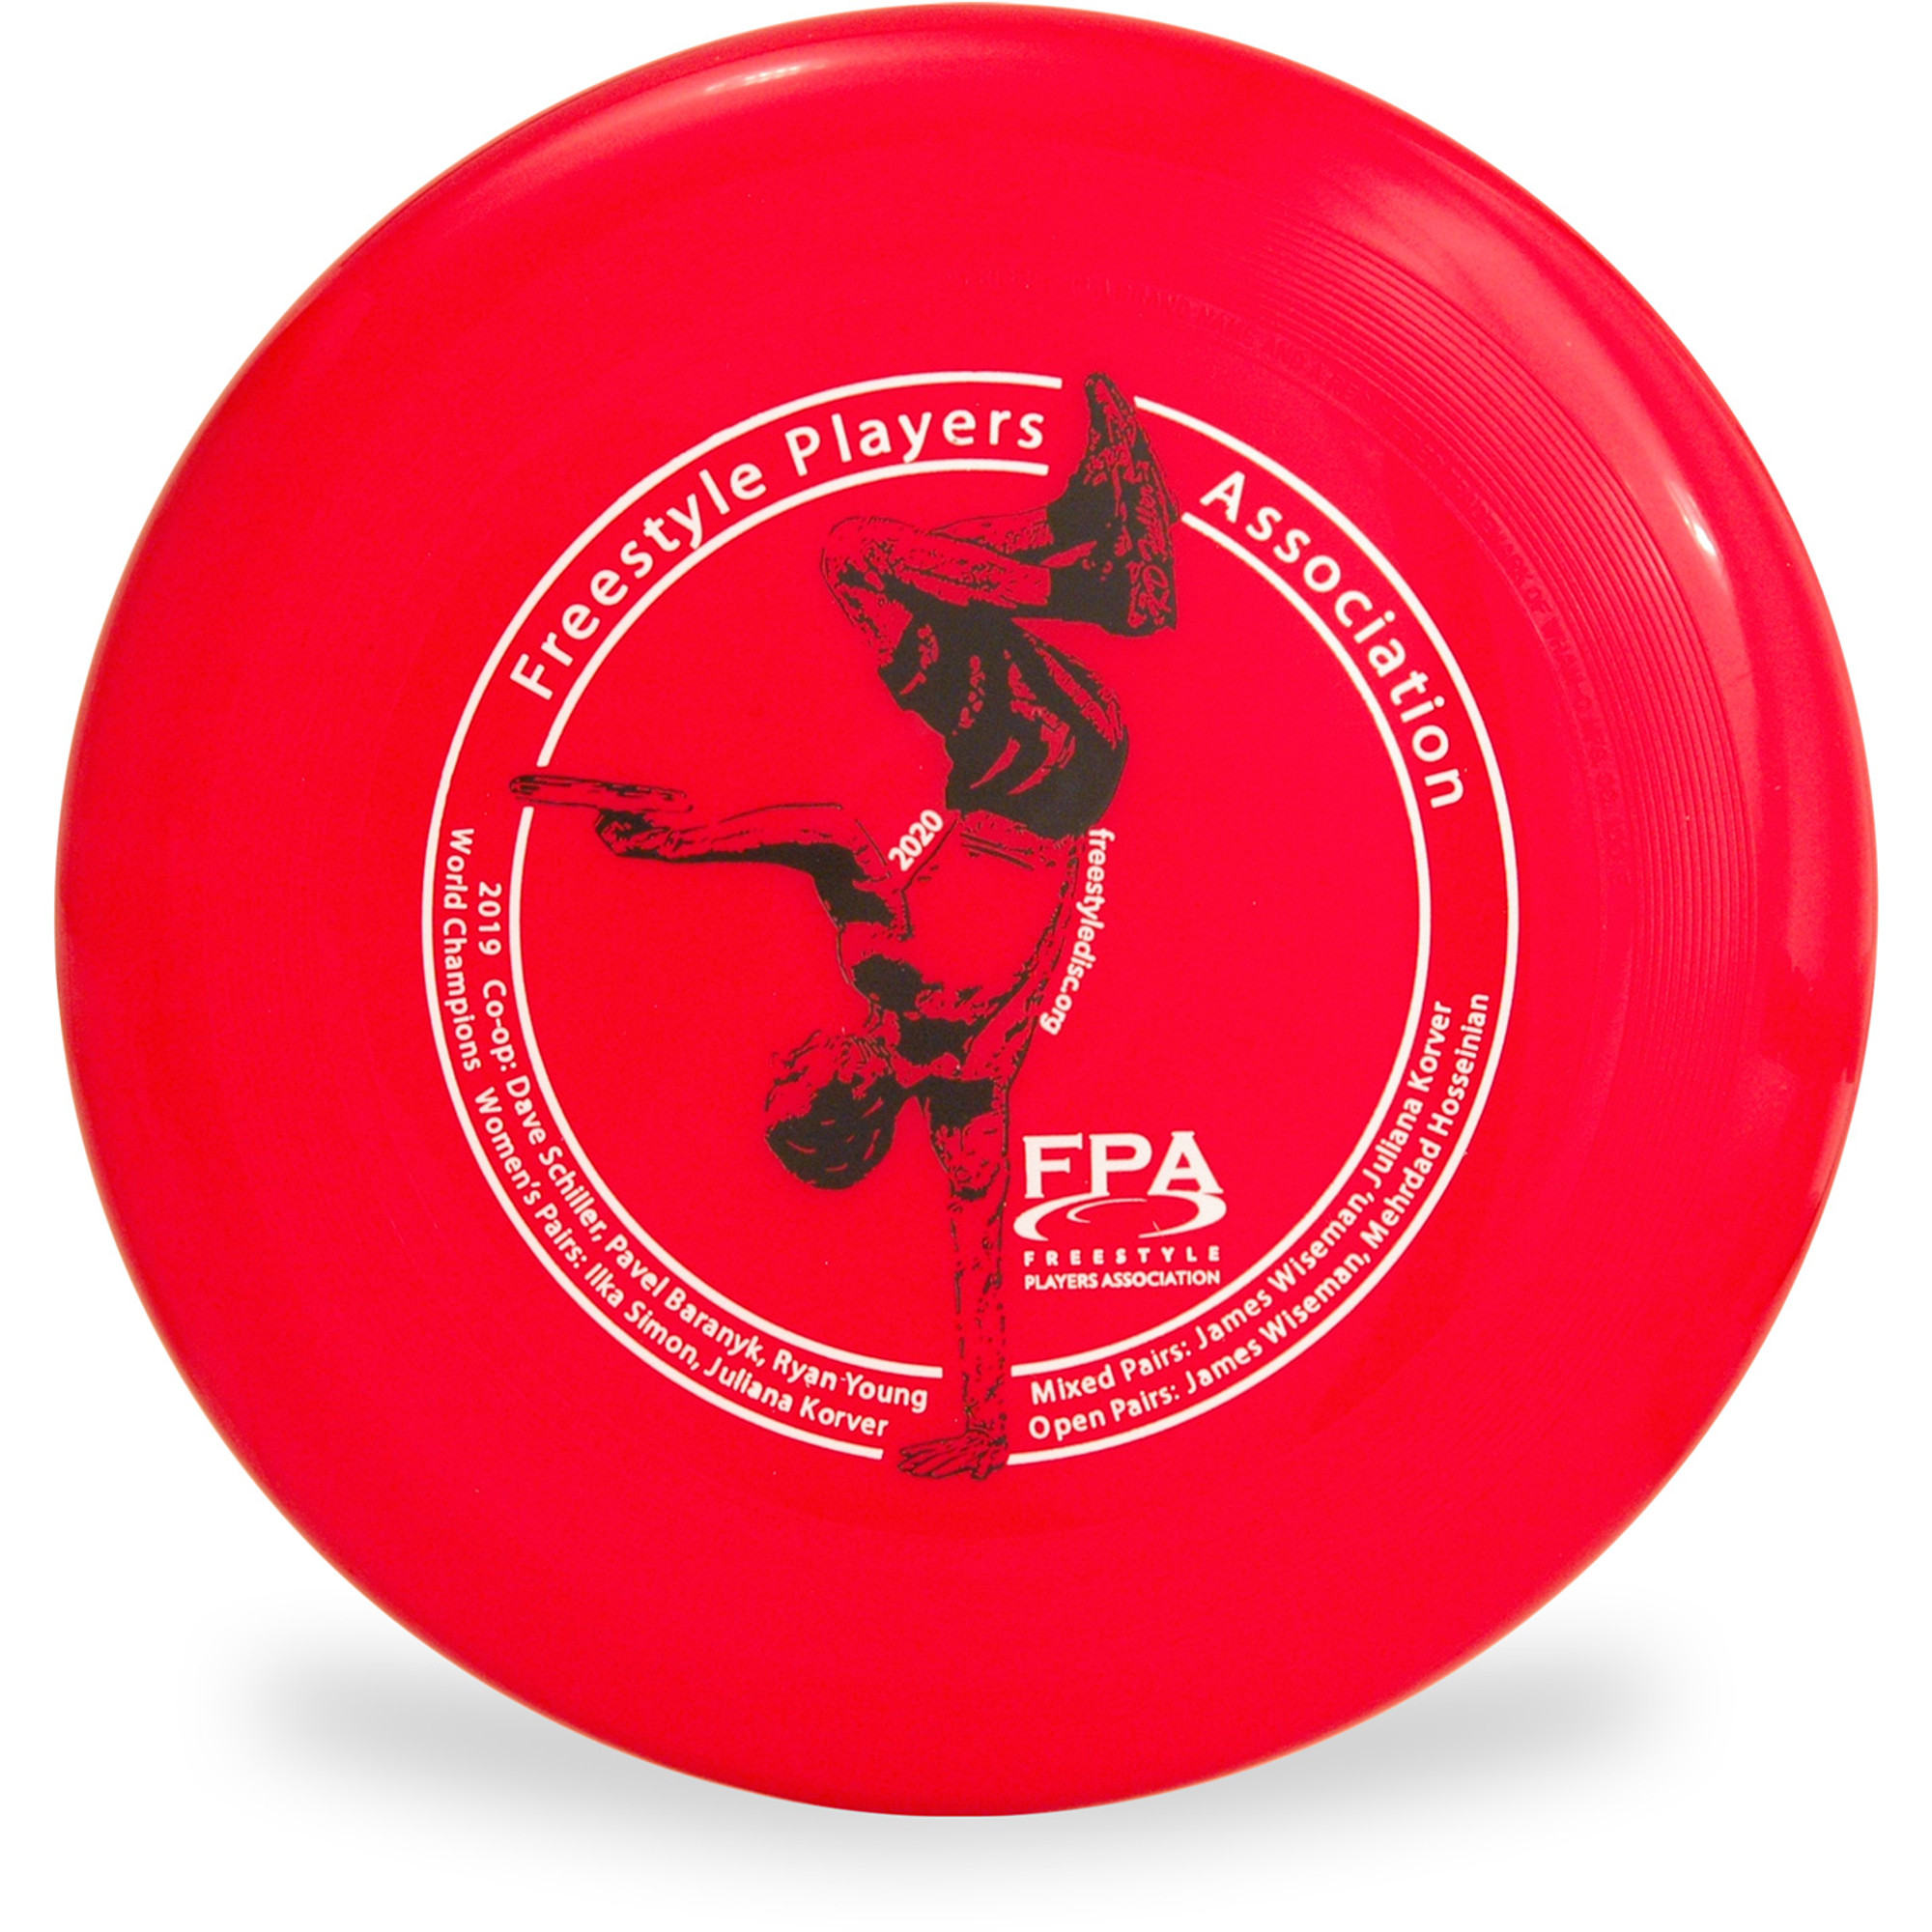 Wham-O 100 Mold-FPA 2020 Custom Design Freestyle Players Association Frisbee